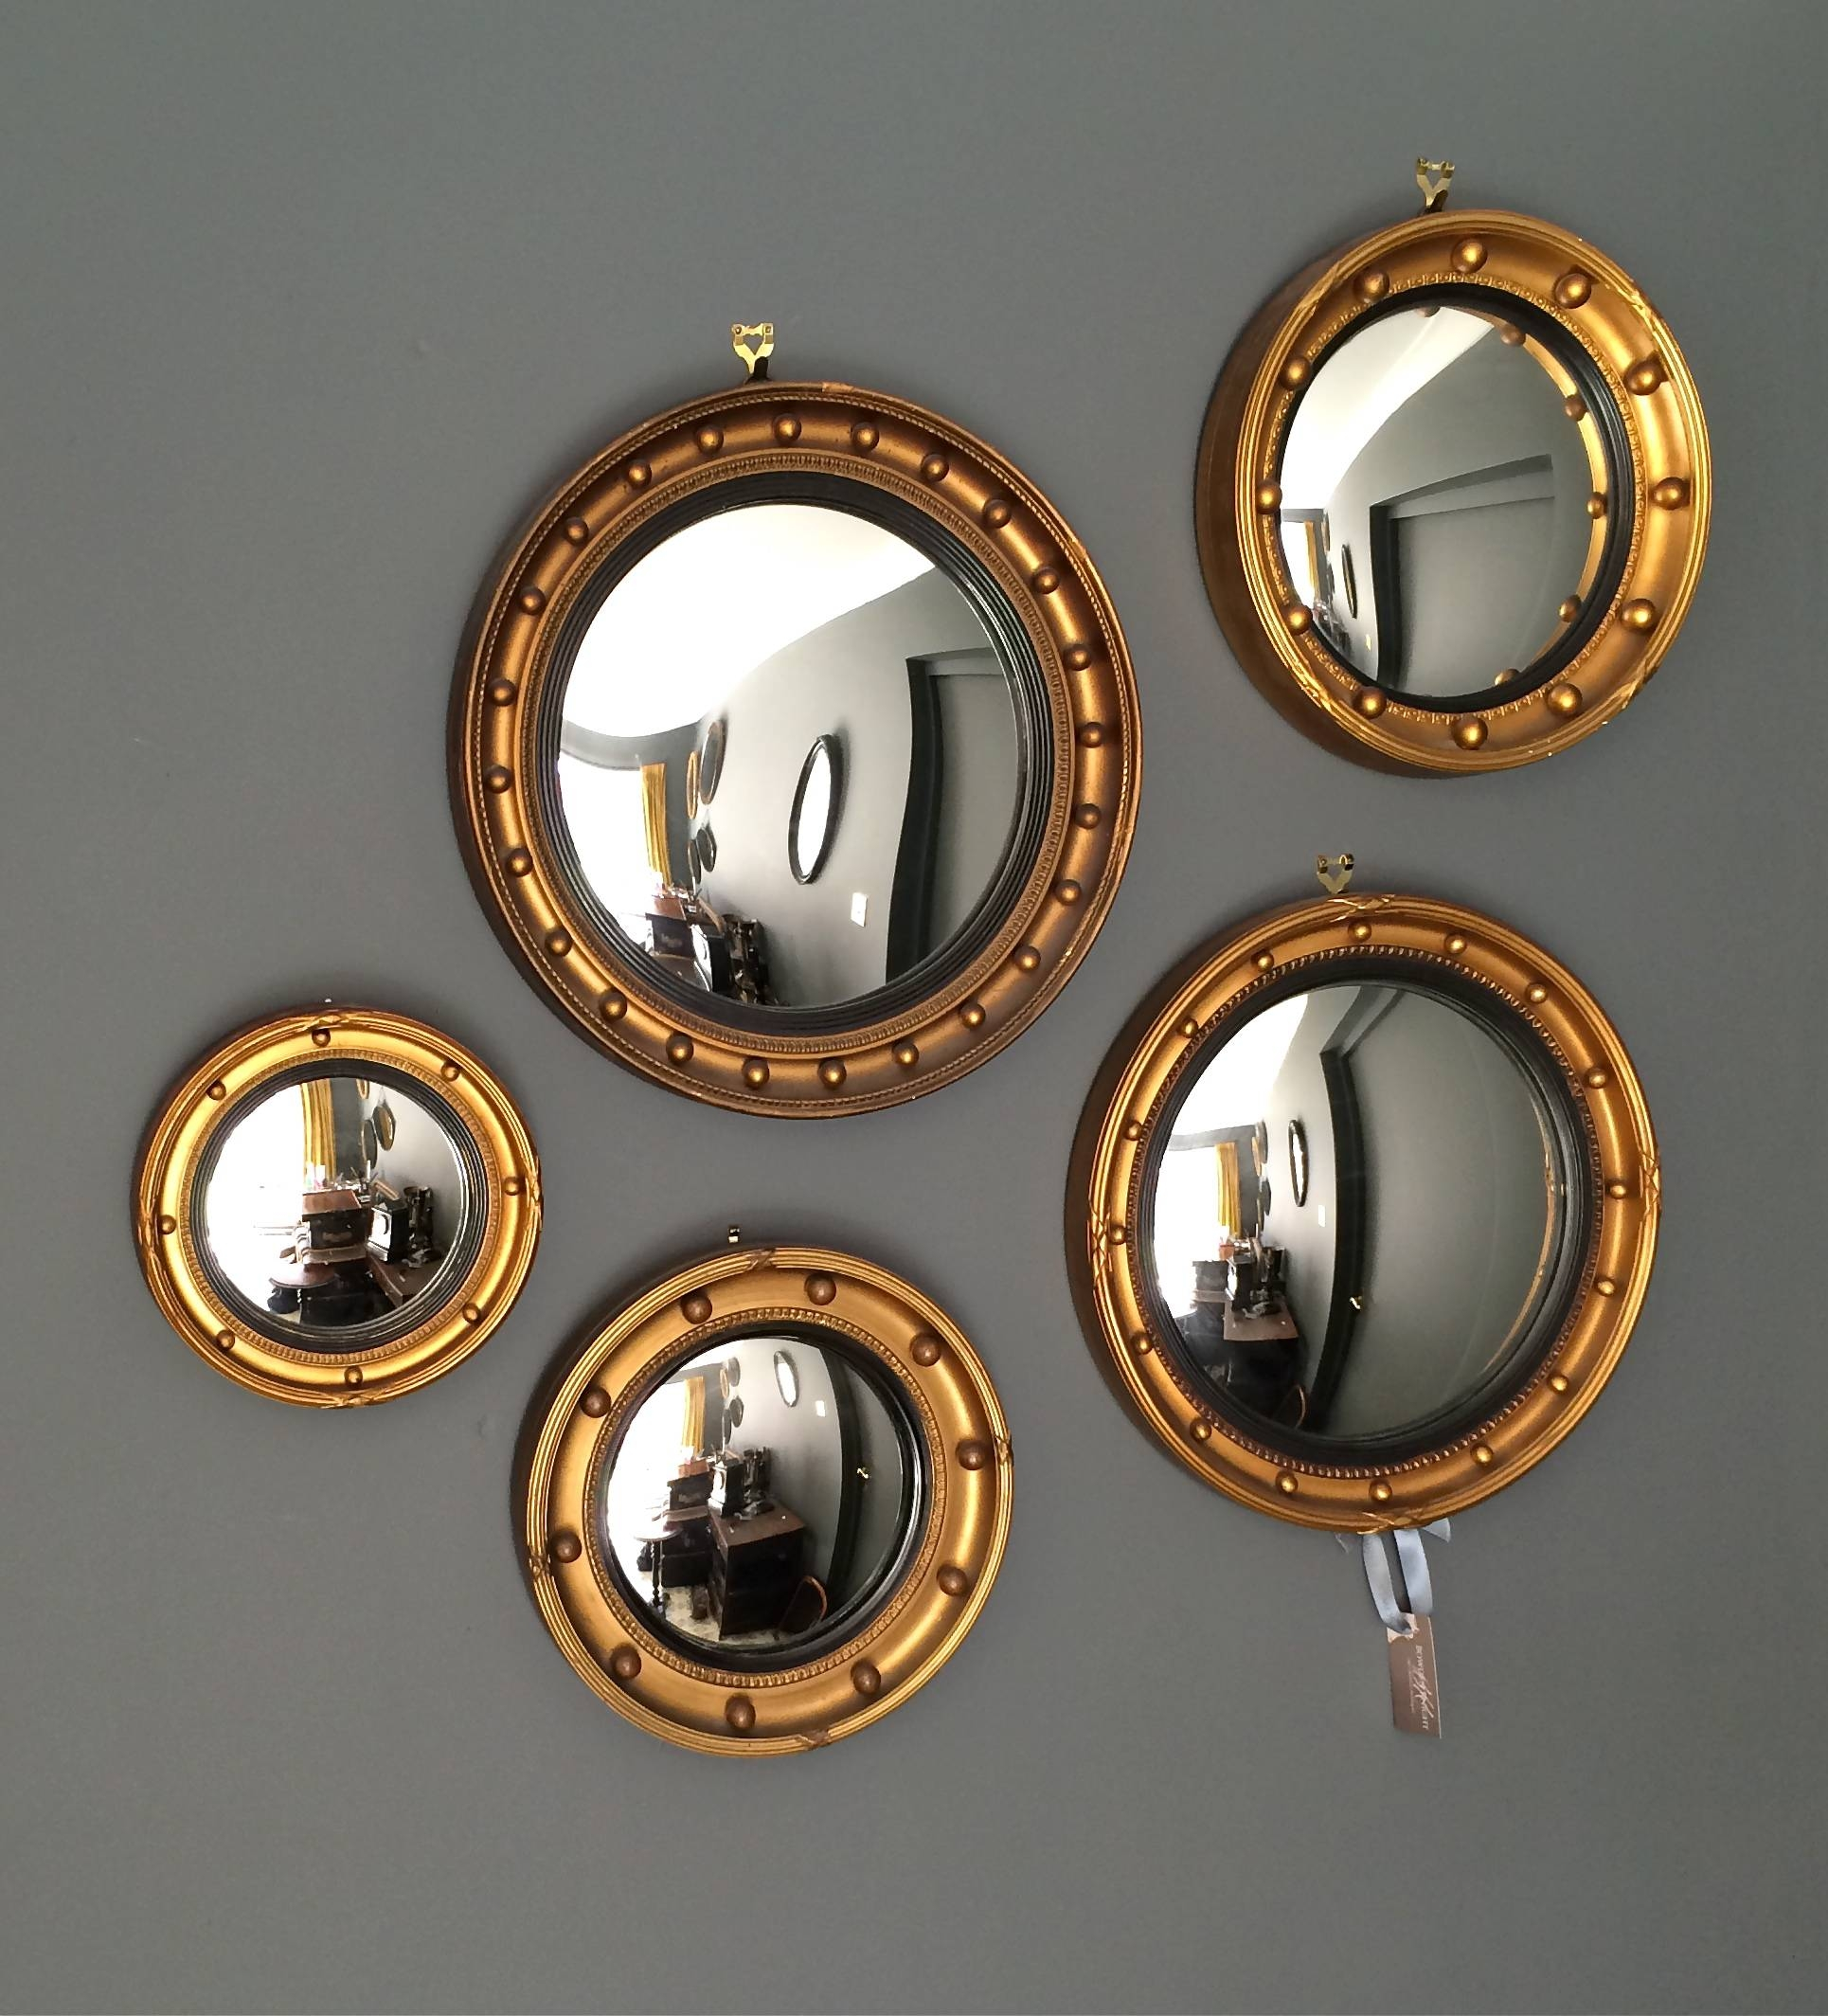 Summer Styling The Decorative Antique Way At Bowden Knight Pertaining To Convex Decorative Mirrors (View 14 of 15)